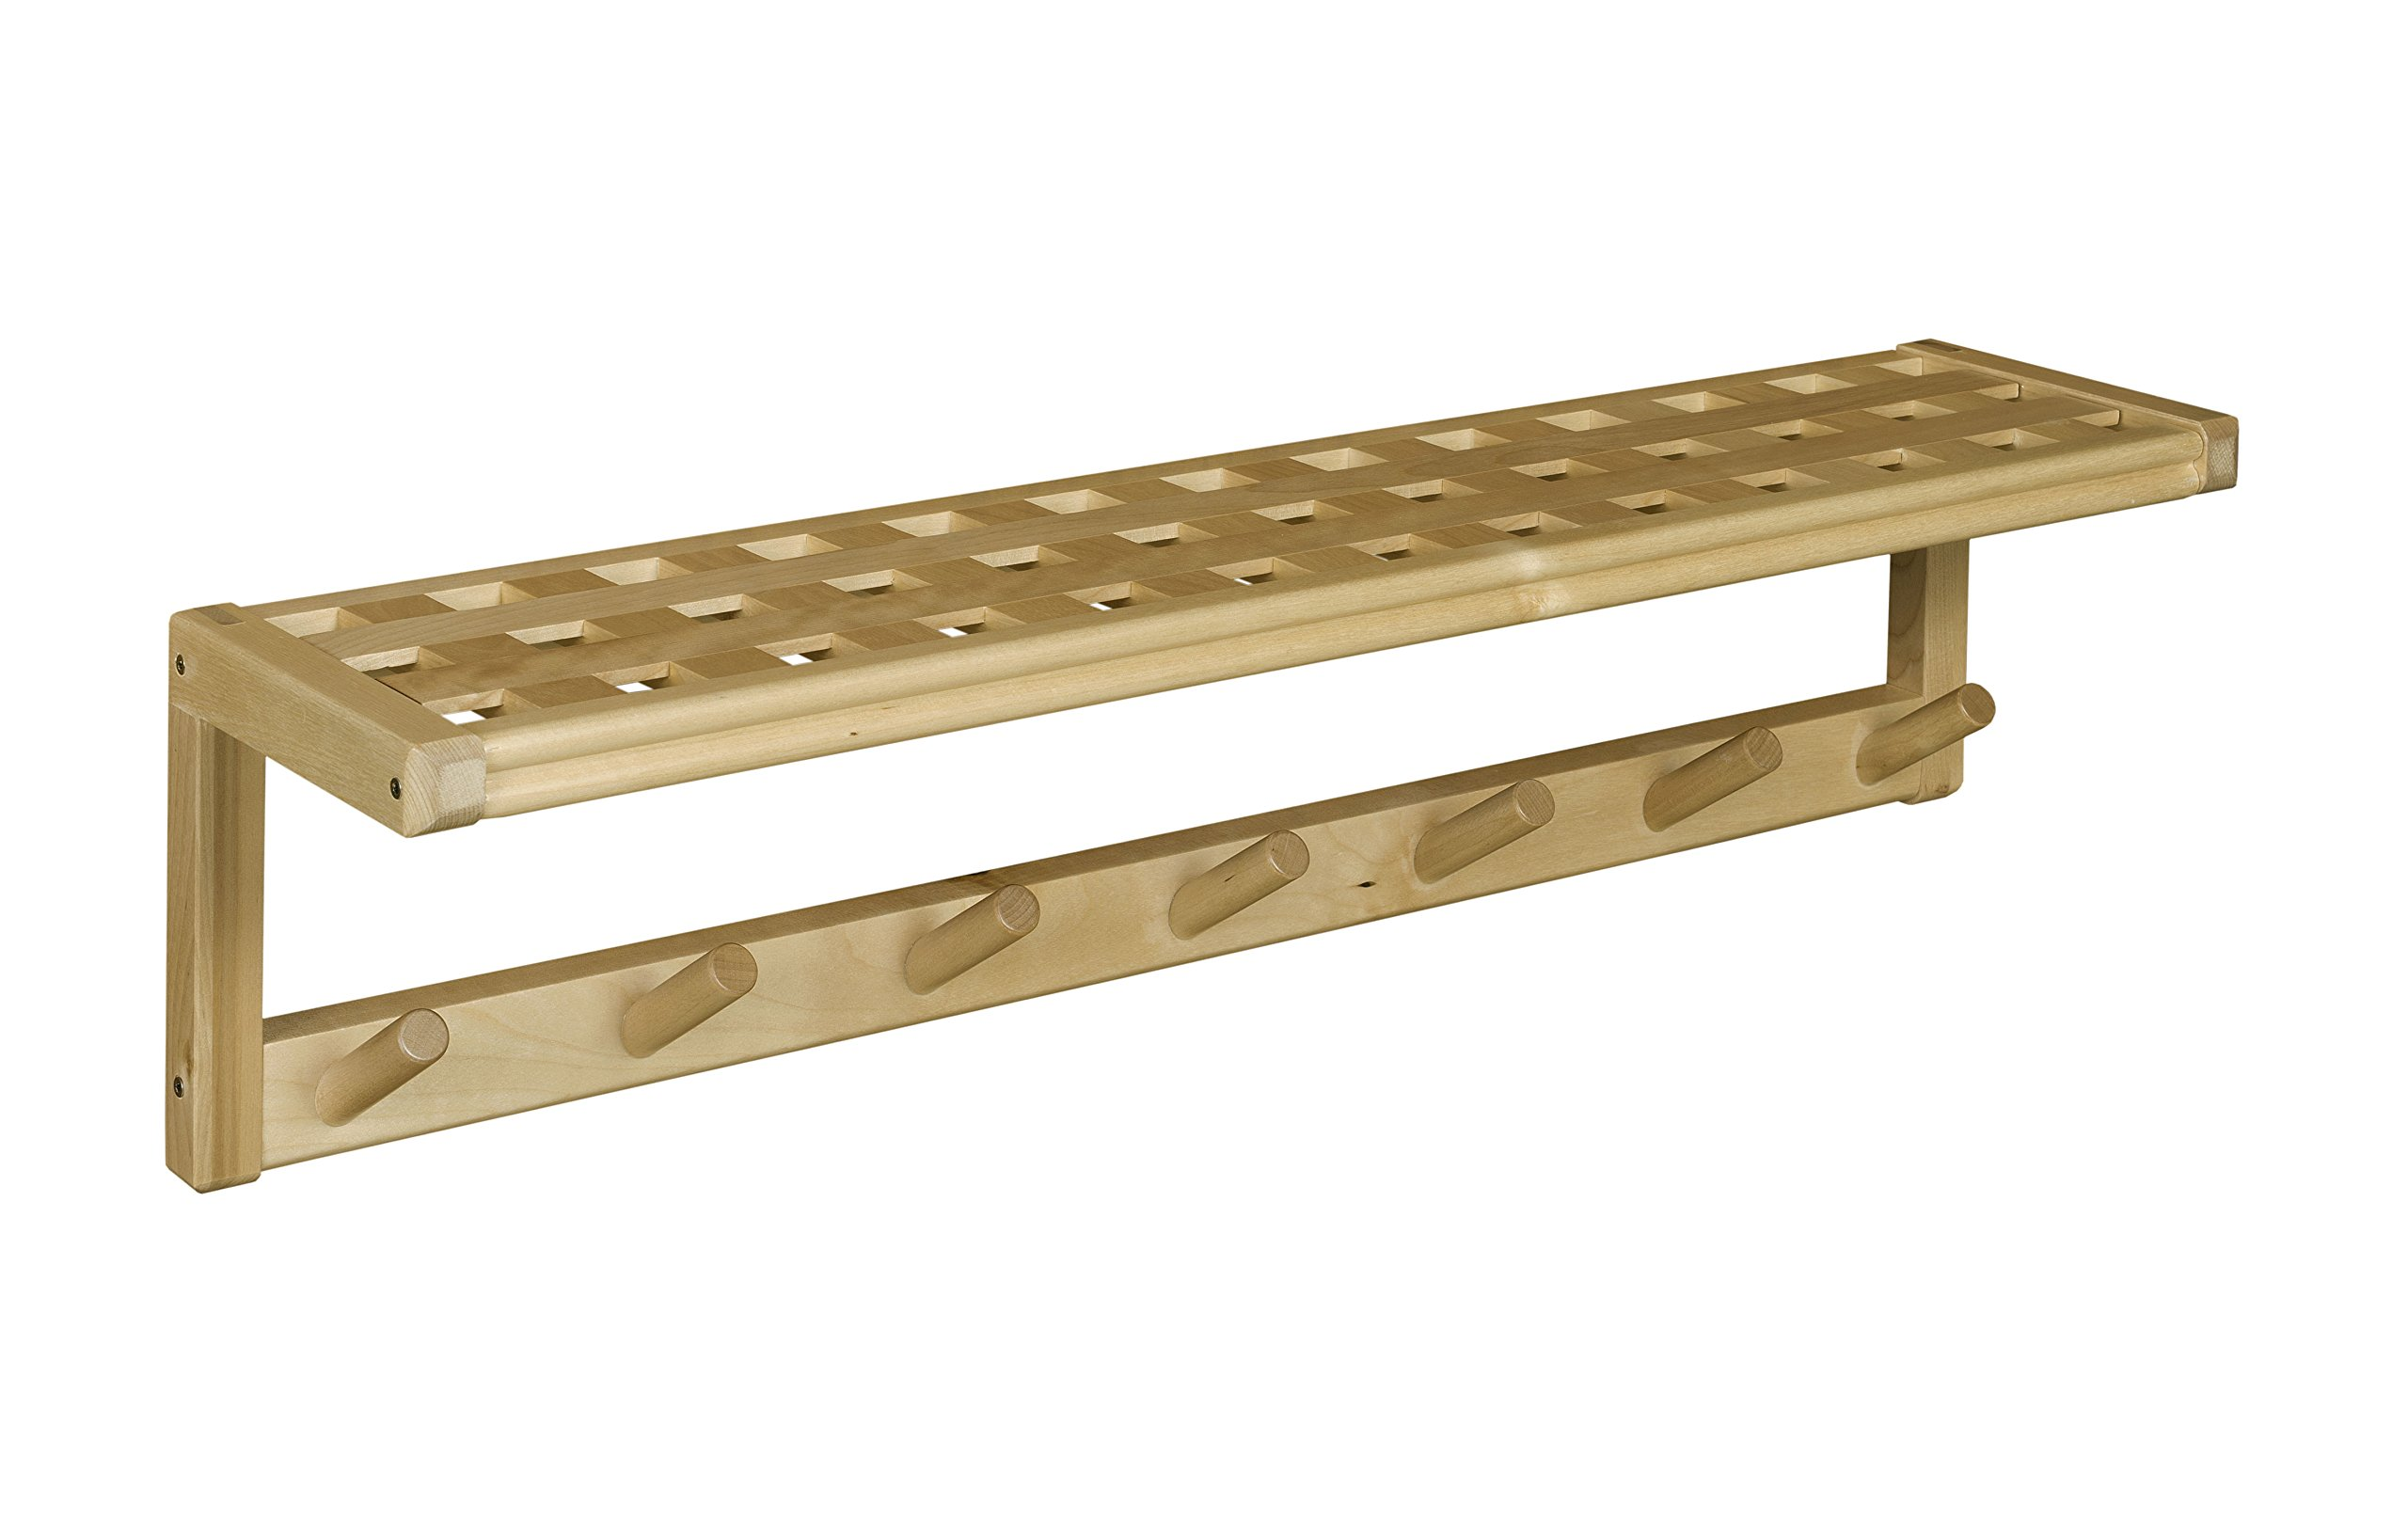 New Ridge Home Goods Beaumont Solid Birch Wood Large Peg Rack with Shelf, Blonde